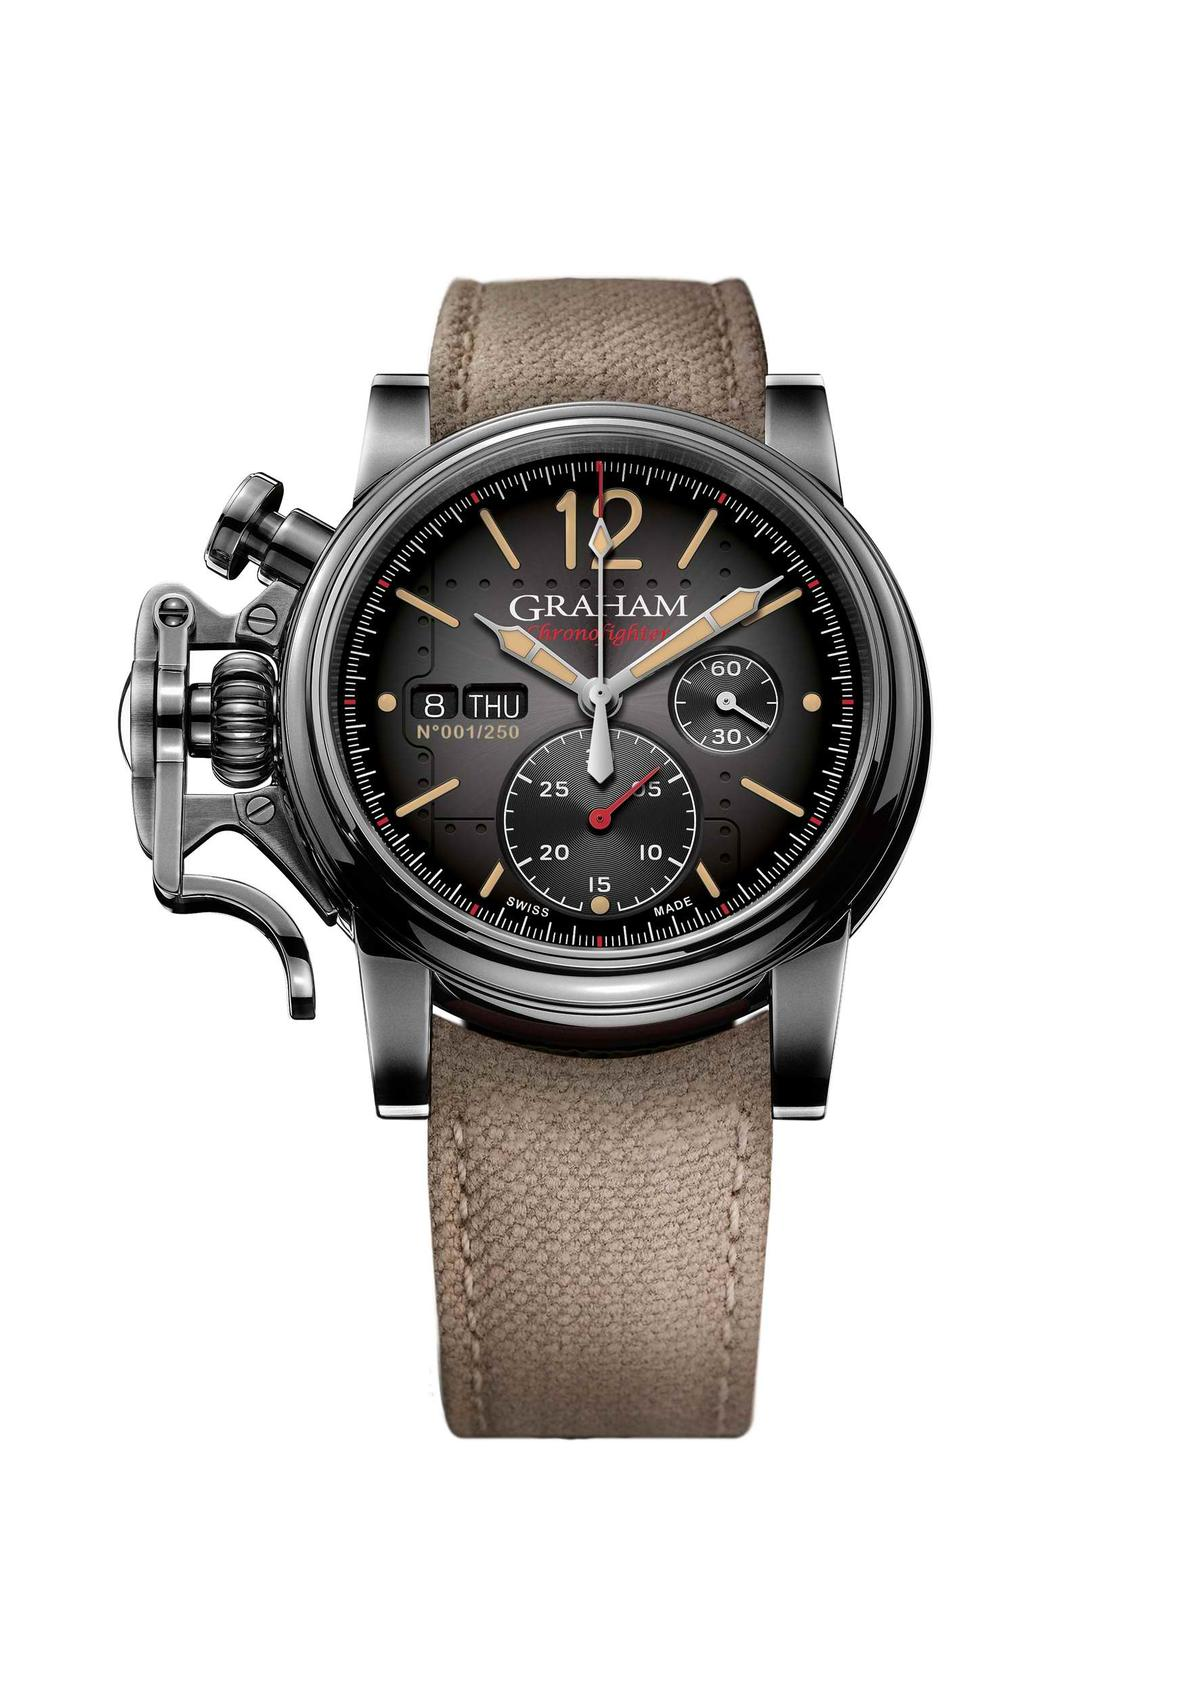 【錶評】GRAHAM Chronofighter Vintage Aircraft Ltd